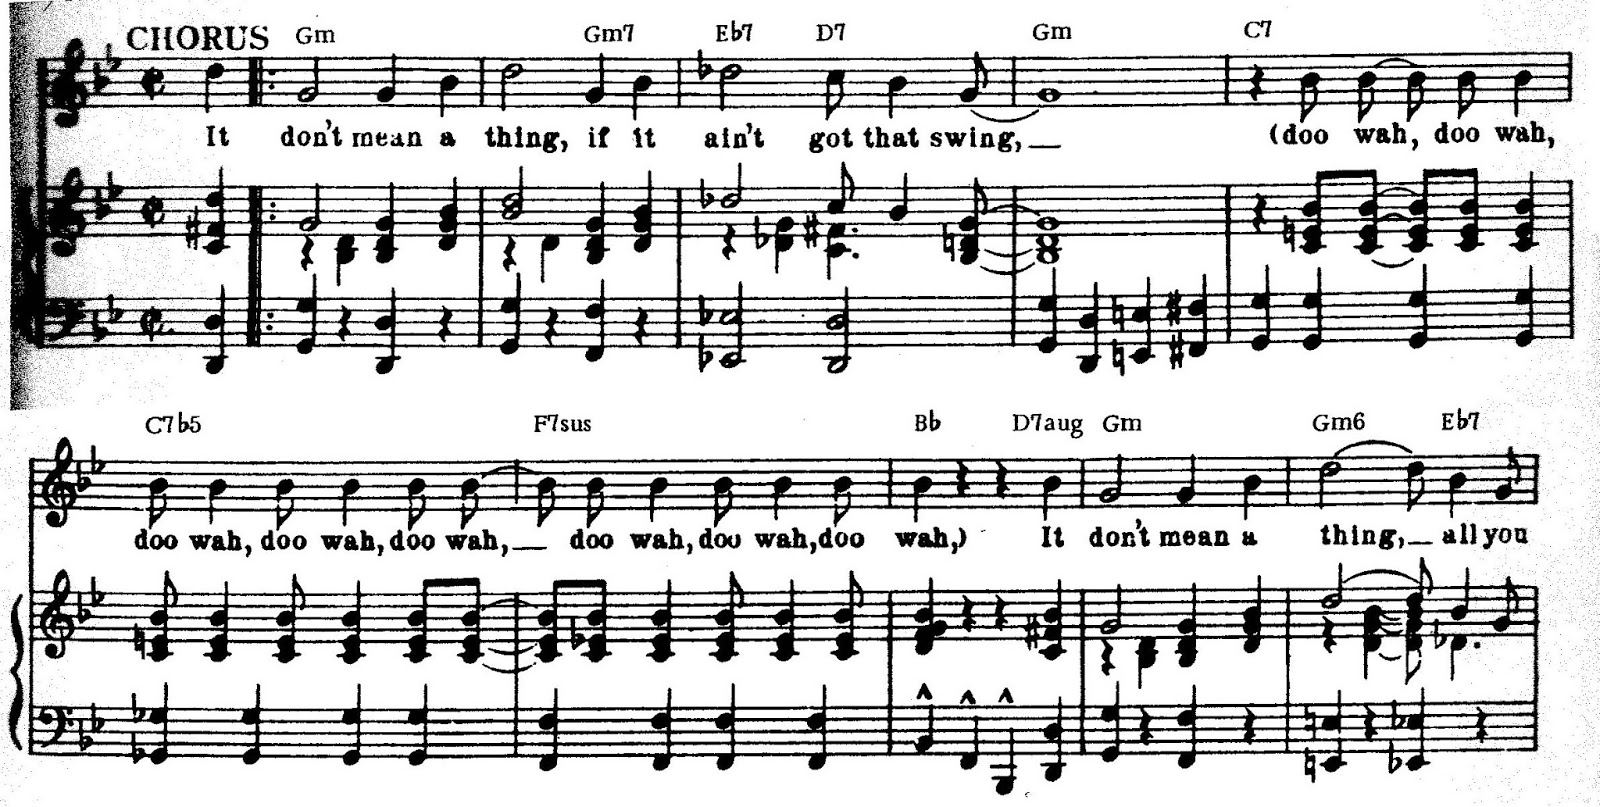 Peter spitzer music blog it dont mean a thing the chord changes as is often the case the guitar symbols do not accurately represent the harmony in the piano arrangement for example the gm7 symbol in measure 2 is there biocorpaavc Image collections